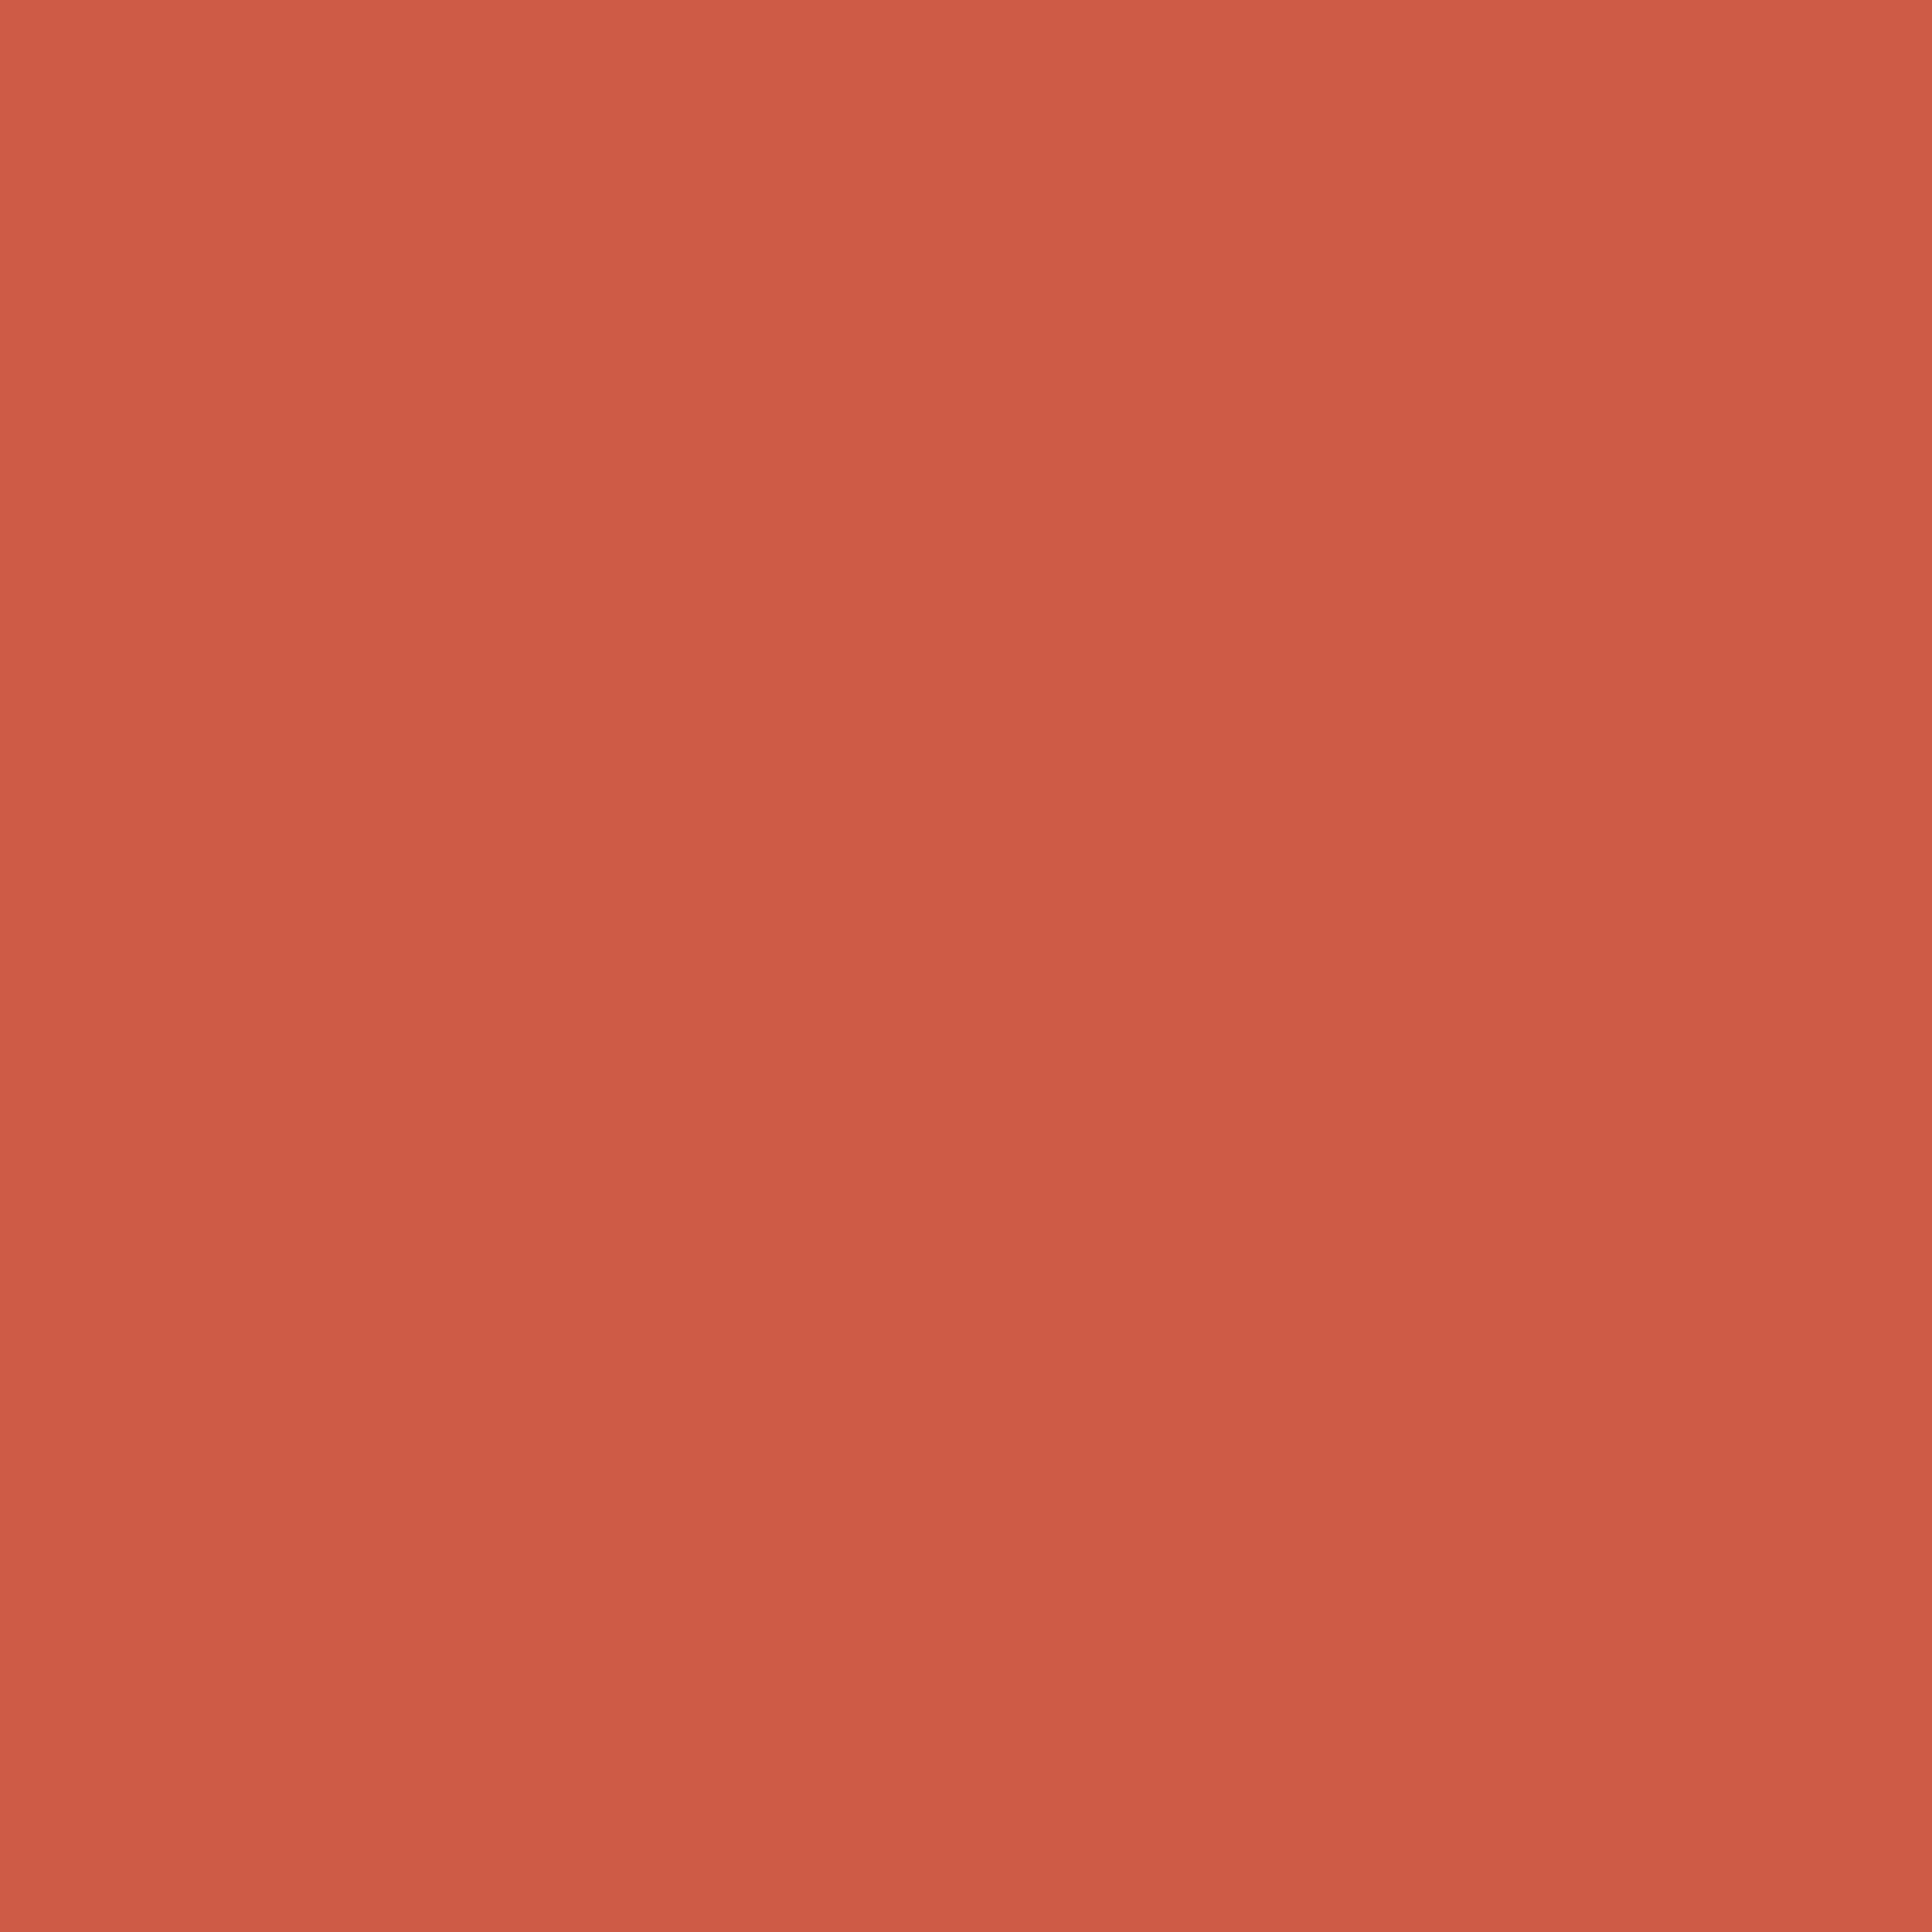 2048x2048 Dark Coral Solid Color Background